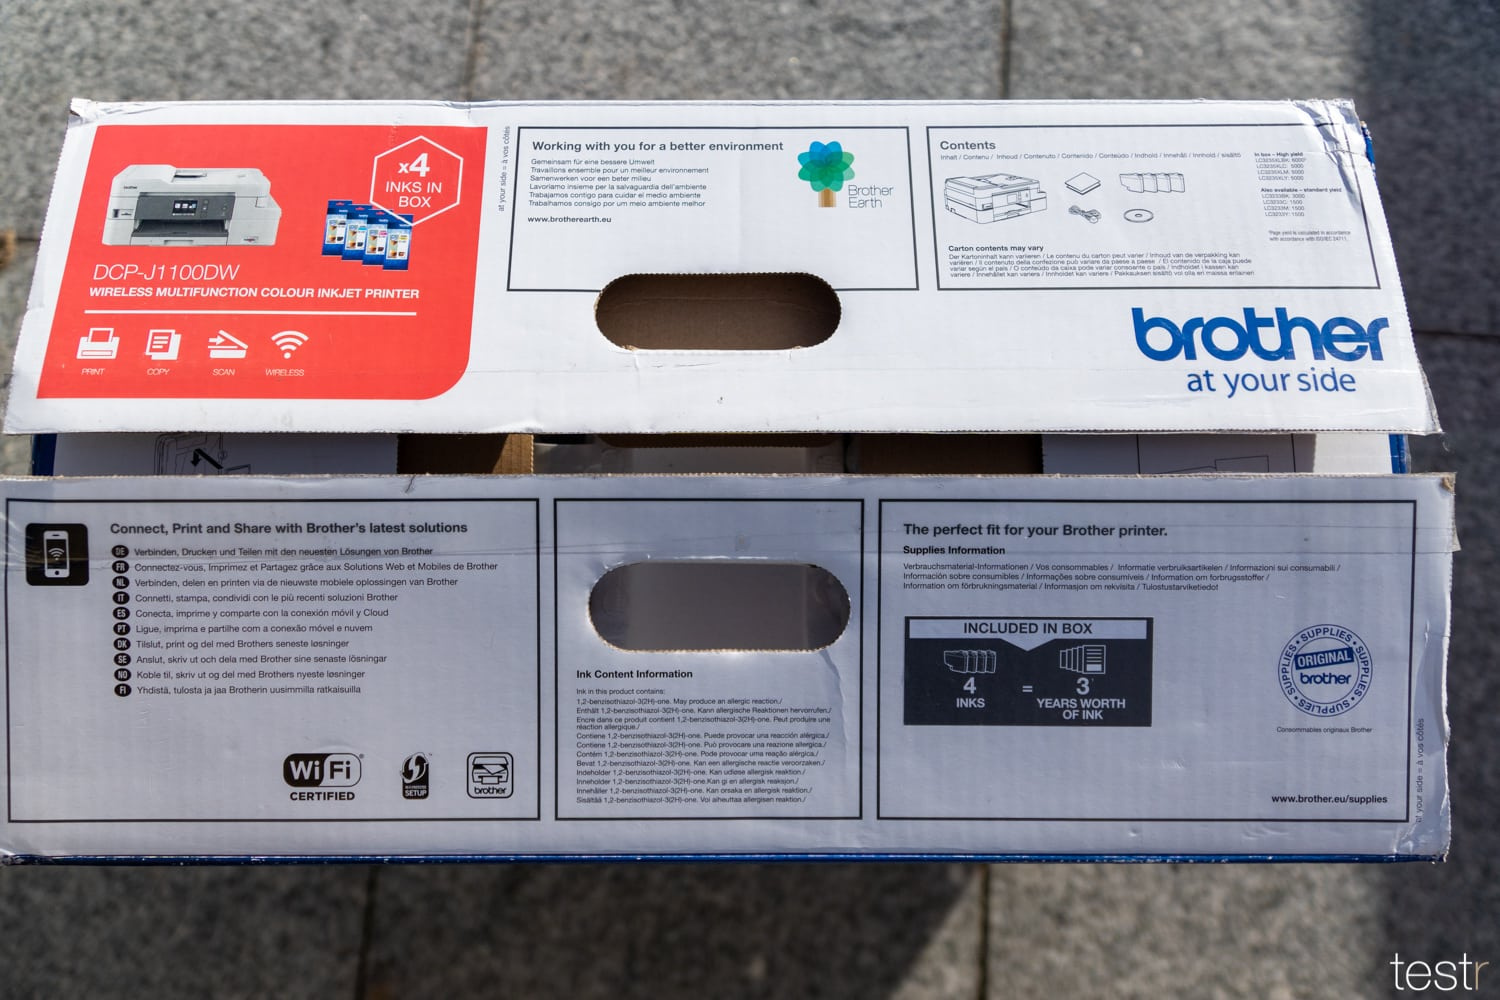 Brother DCP J1100DW 4